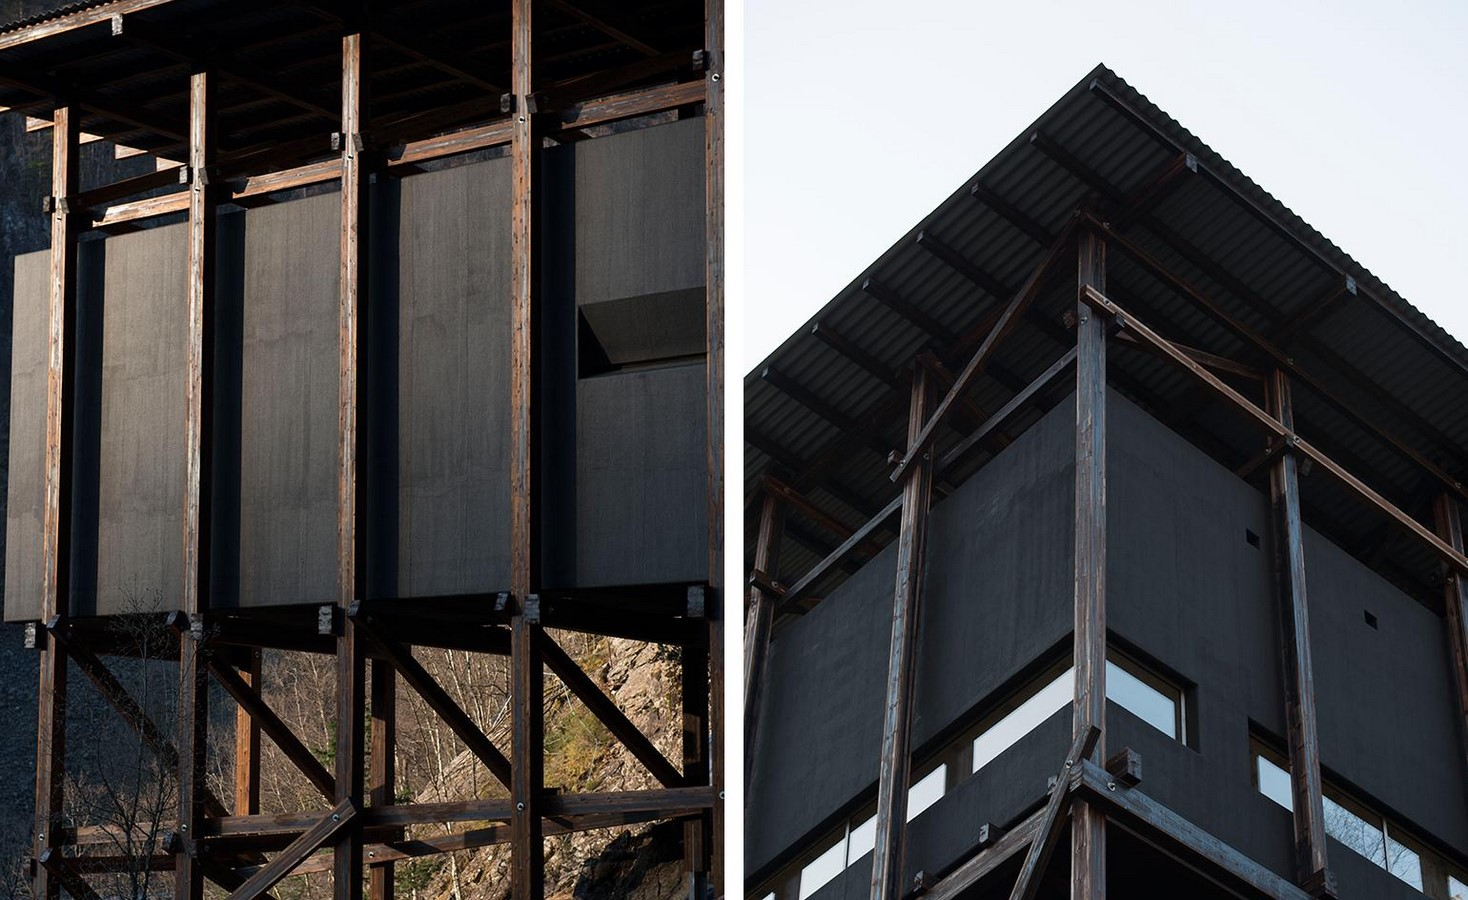 10 Things you did not know about Peter Zumthor - Sheet13